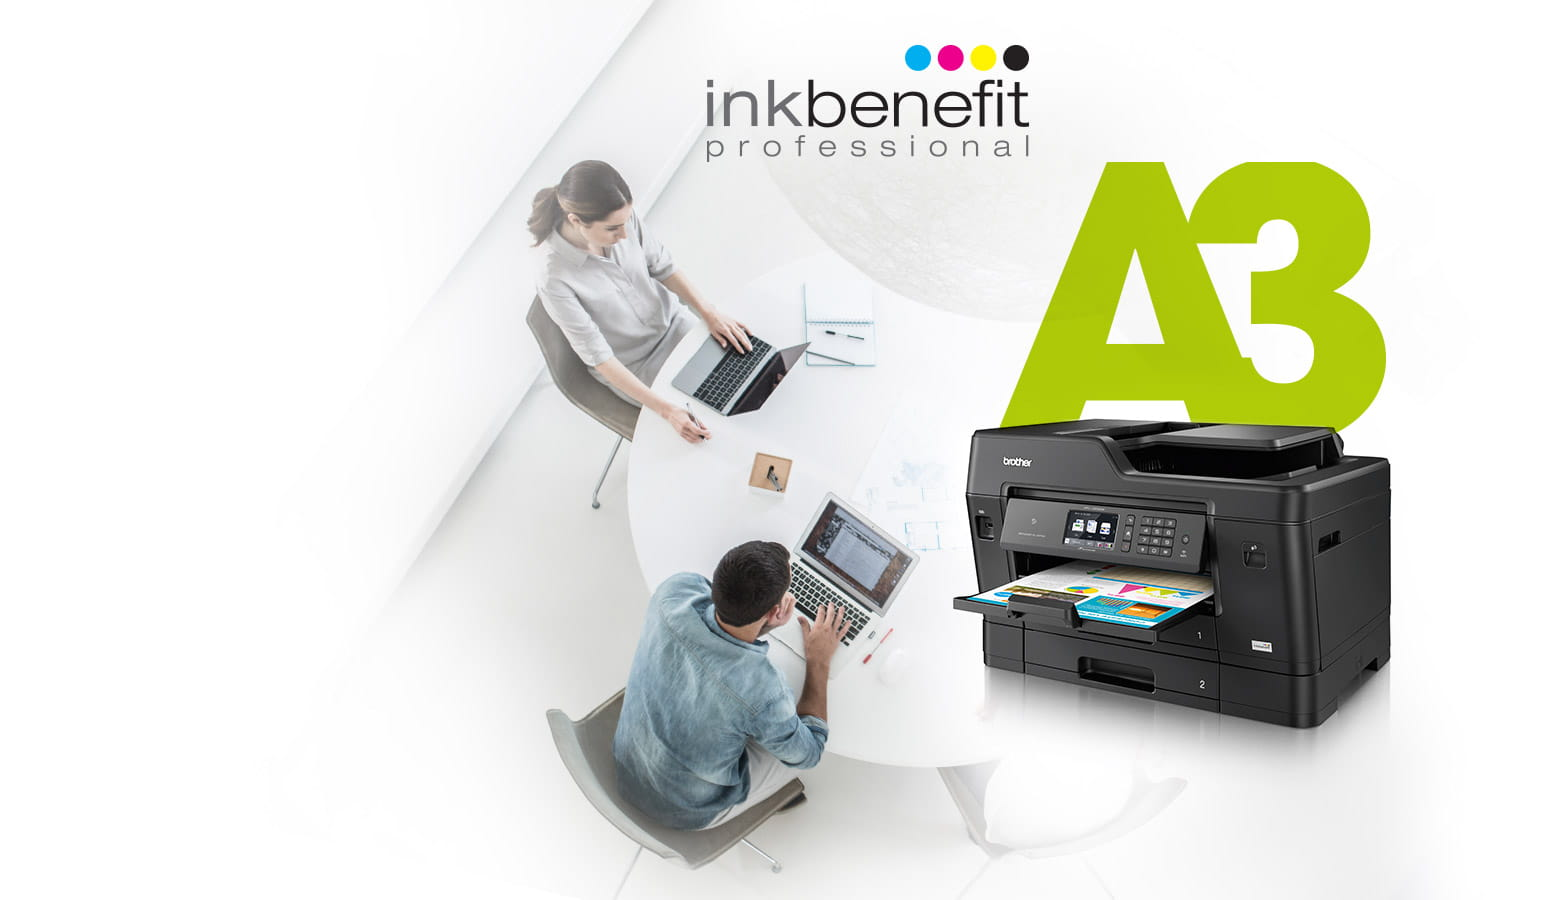 InkBenefit Professional